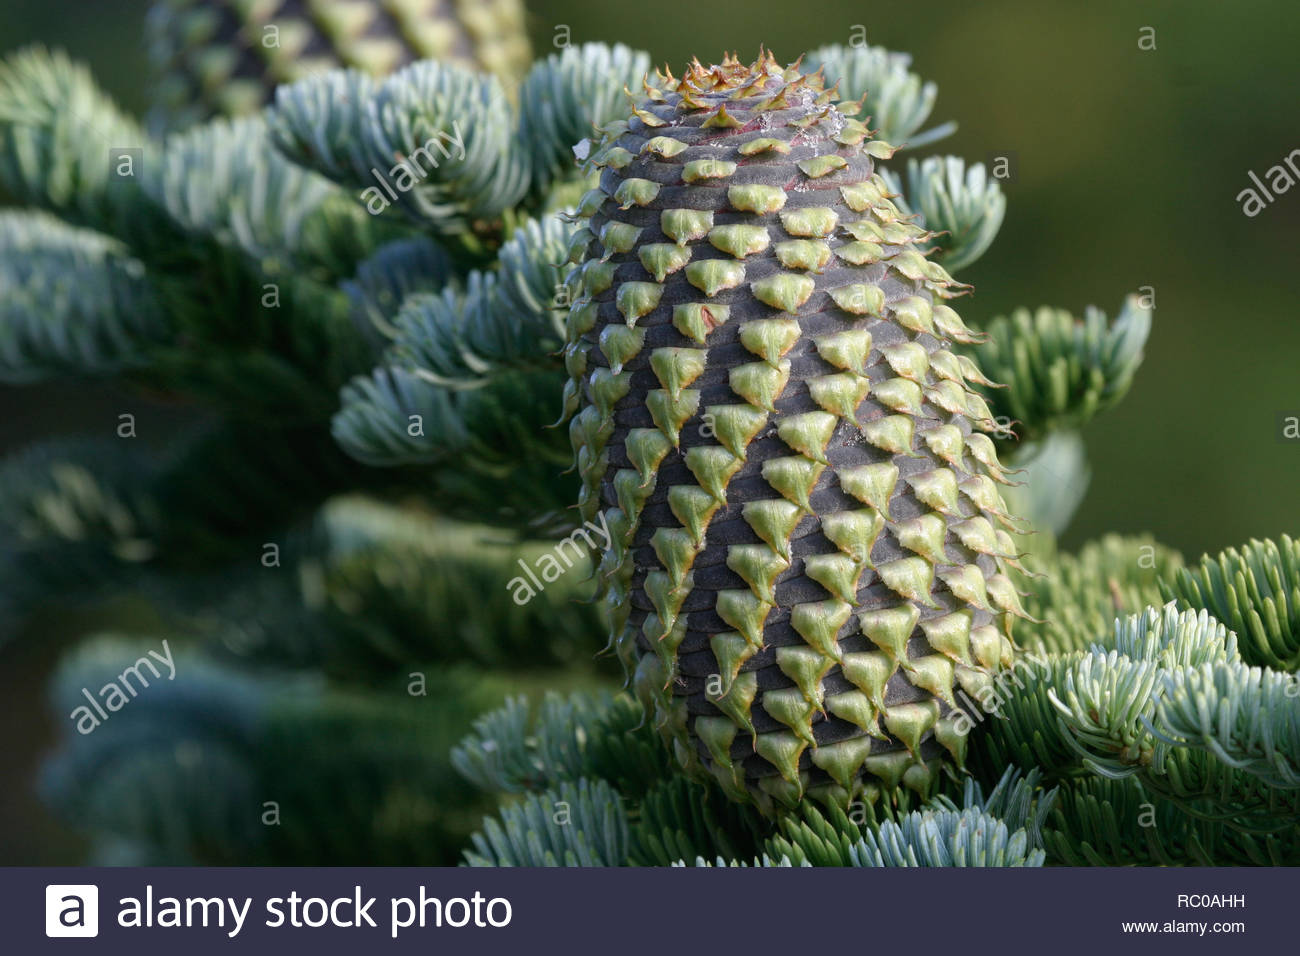 Shasta red fir (Abies magnifica), Crater Lake National Park, Oregon, USA - Stock Image